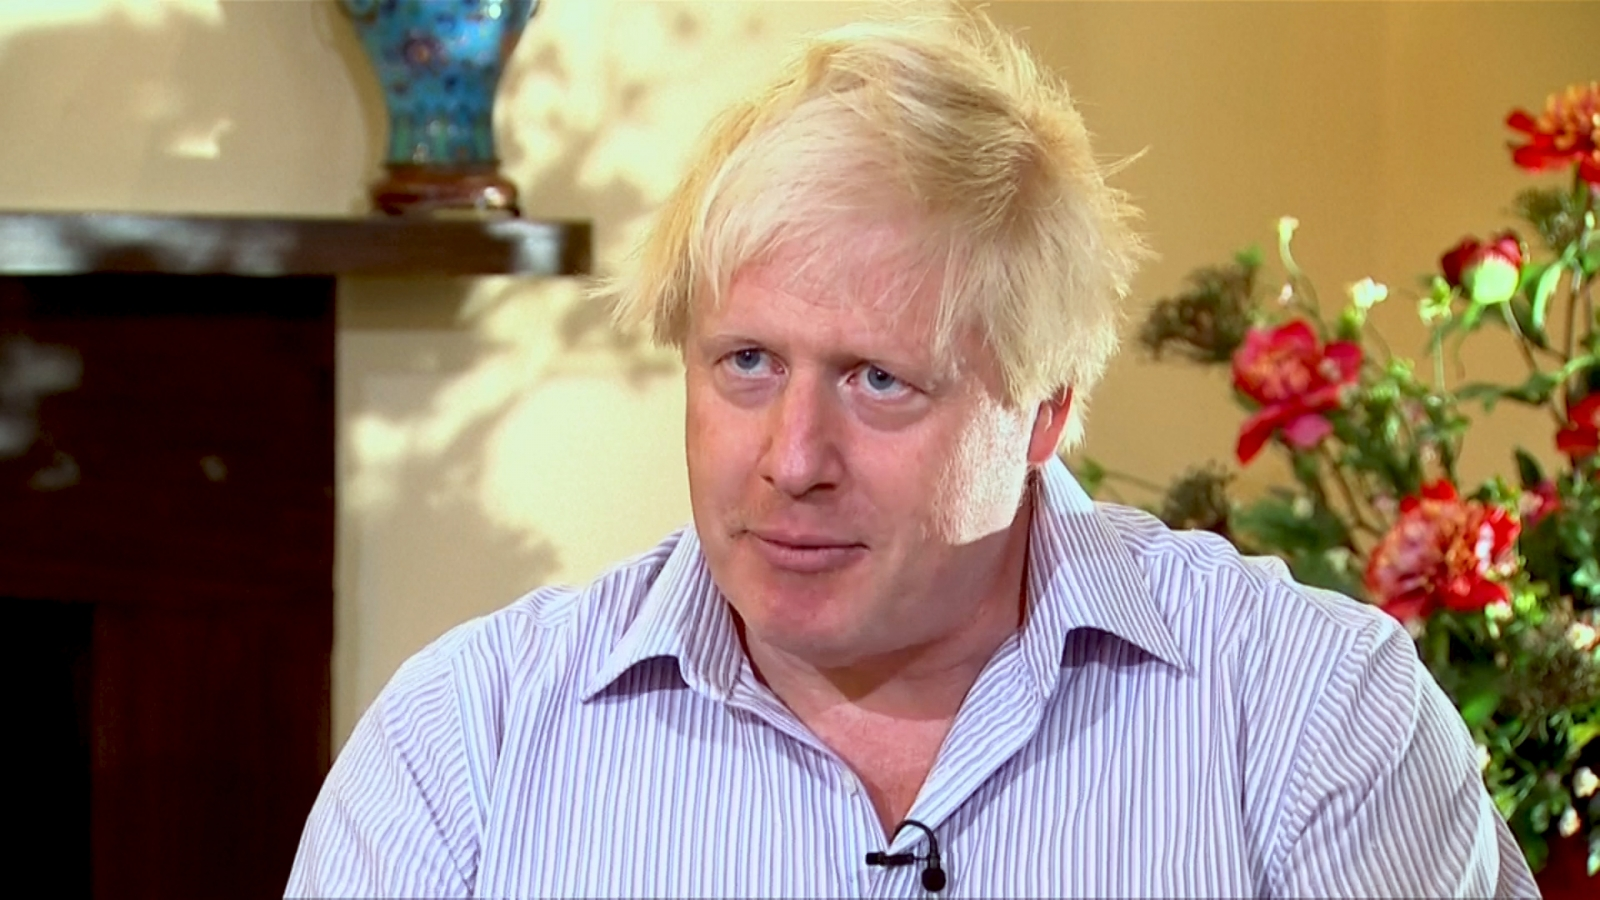 boris-johnson-north-korea-nuclear-test-is-reckless